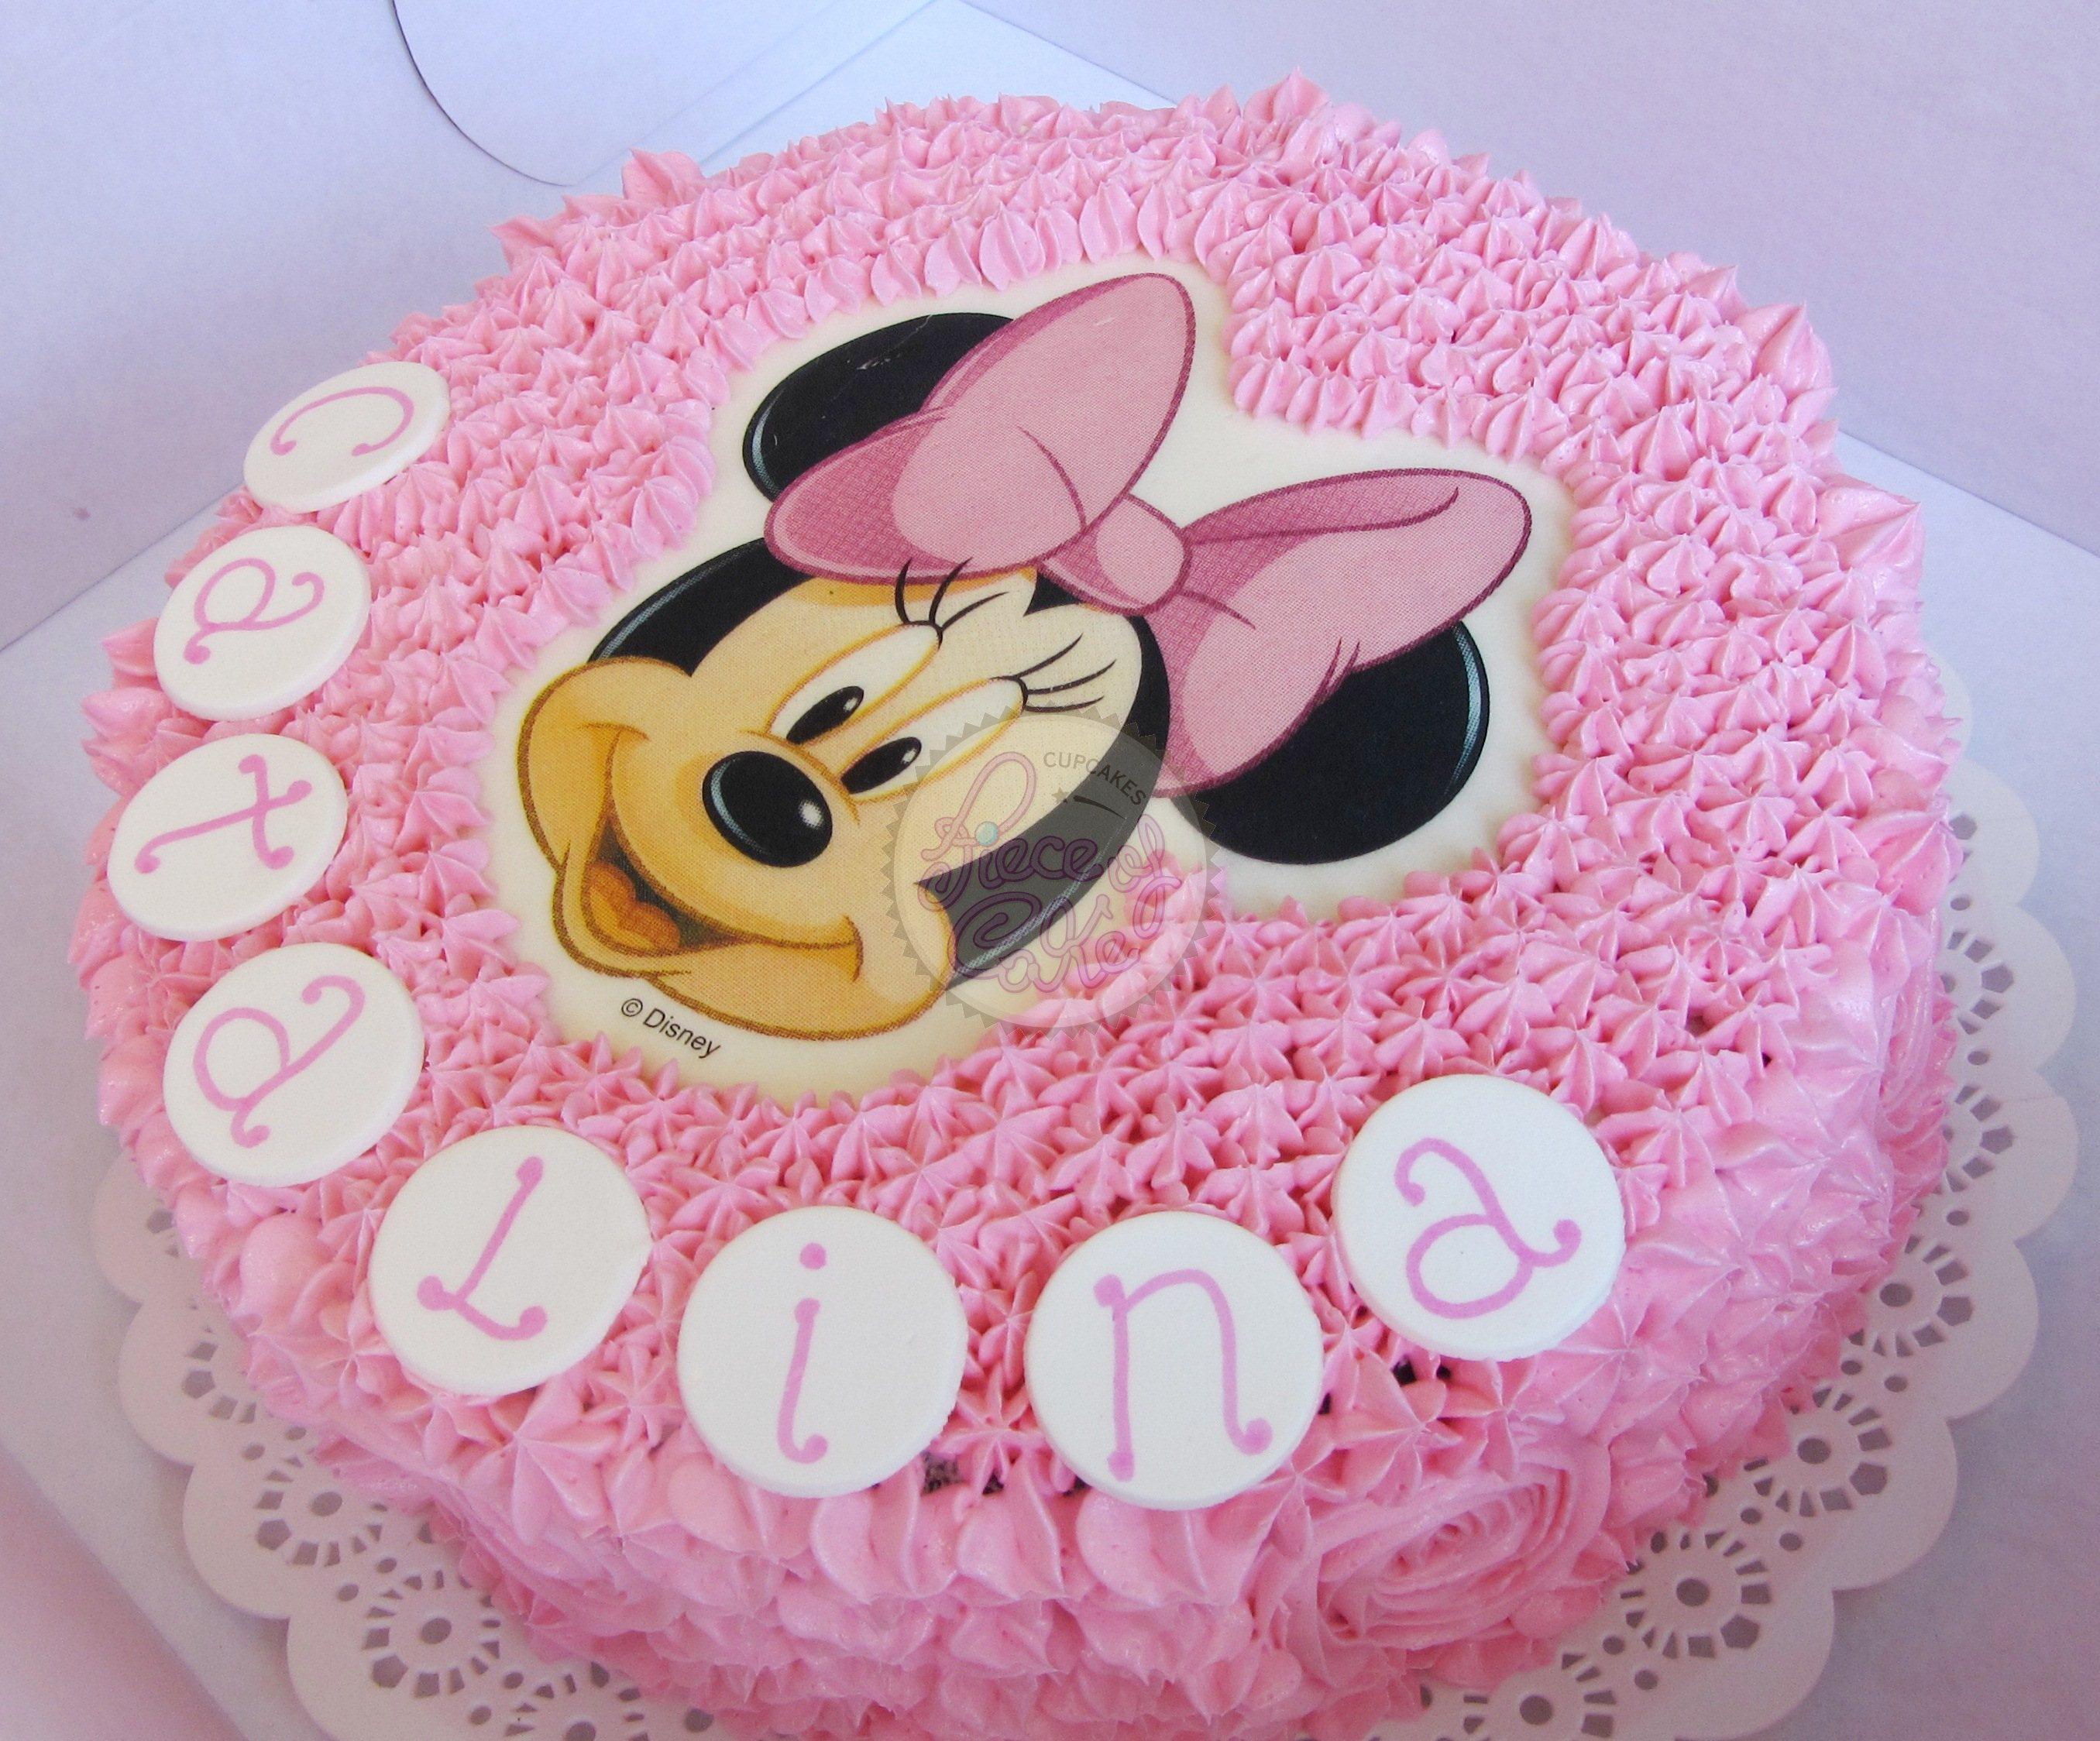 Torta con Minnie Mouse - Imagui